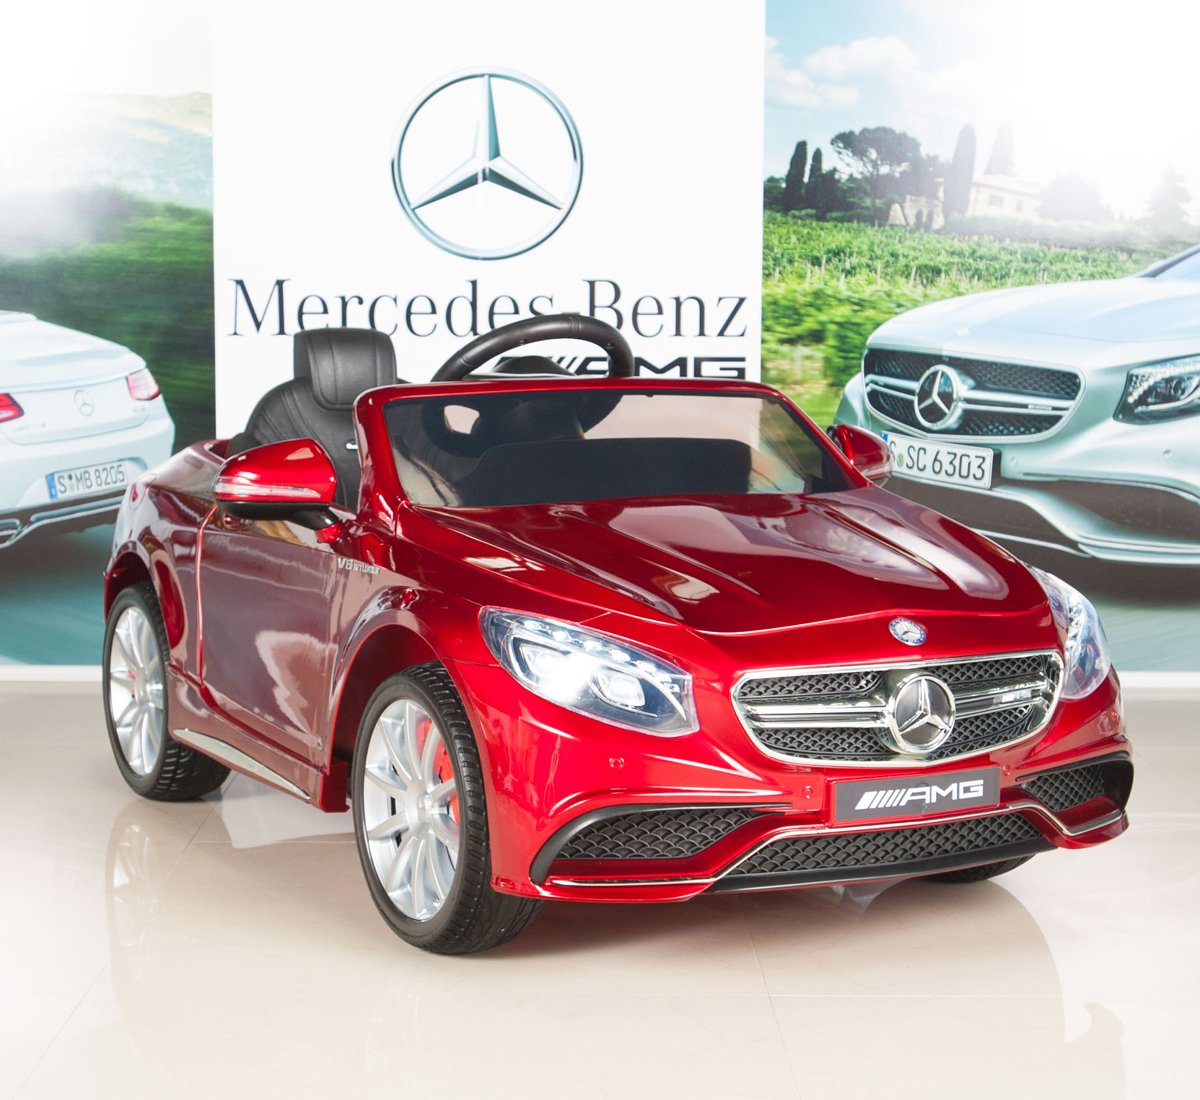 amazoncom mercedes benz s63 ride on car kids rc car remote control electric power wheels w radio mp3 red toys games